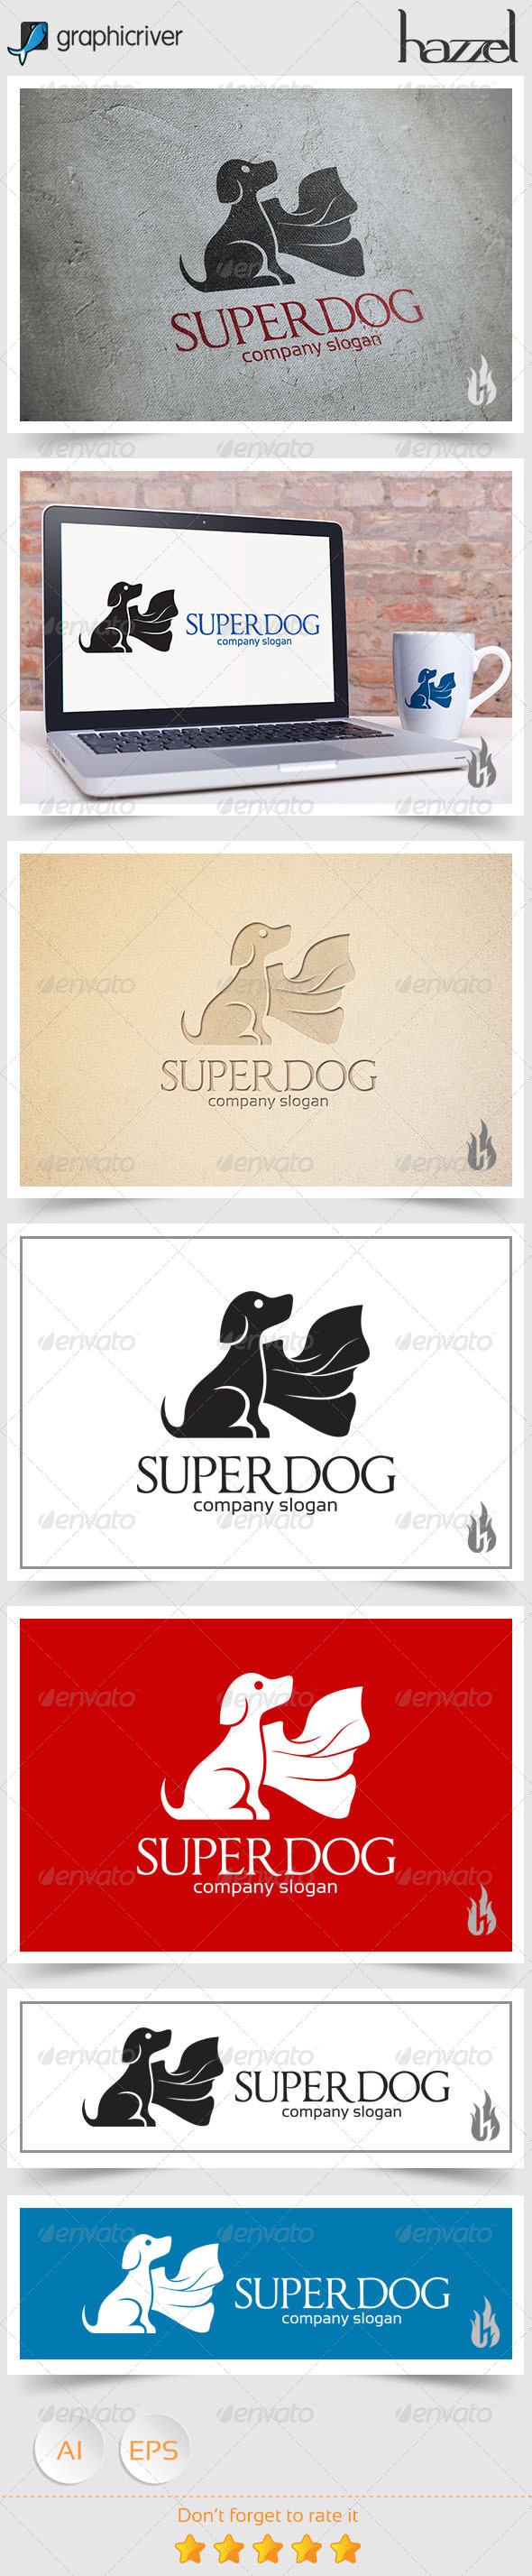 GraphicRiver Superdog Logo 8730721